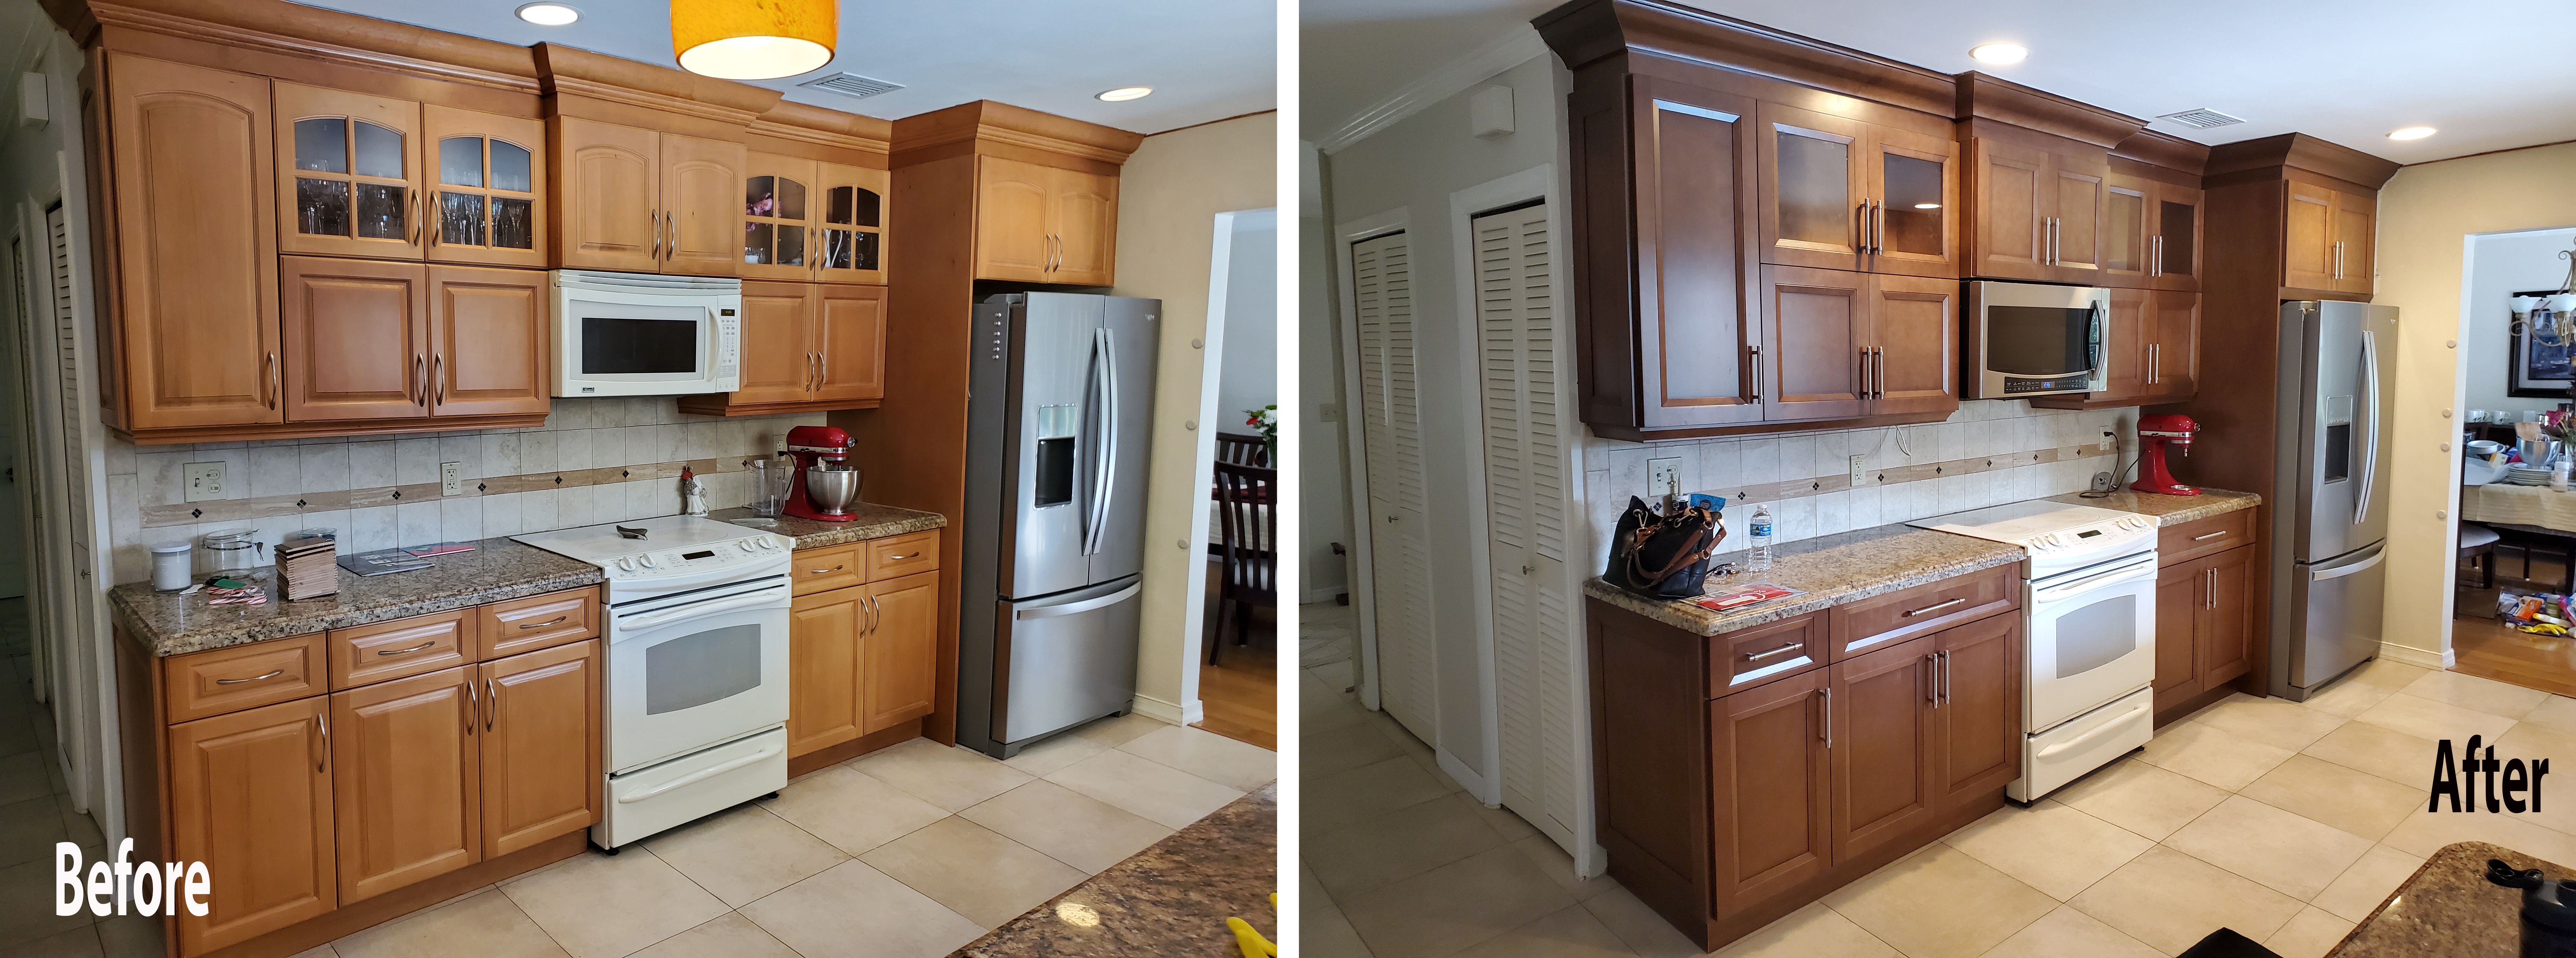 Traditional Kitchen Remodel Done With Cabinet Refacing In 2020 Traditional Kitchen Remodel Kitchen Remodel Traditional Kitchen